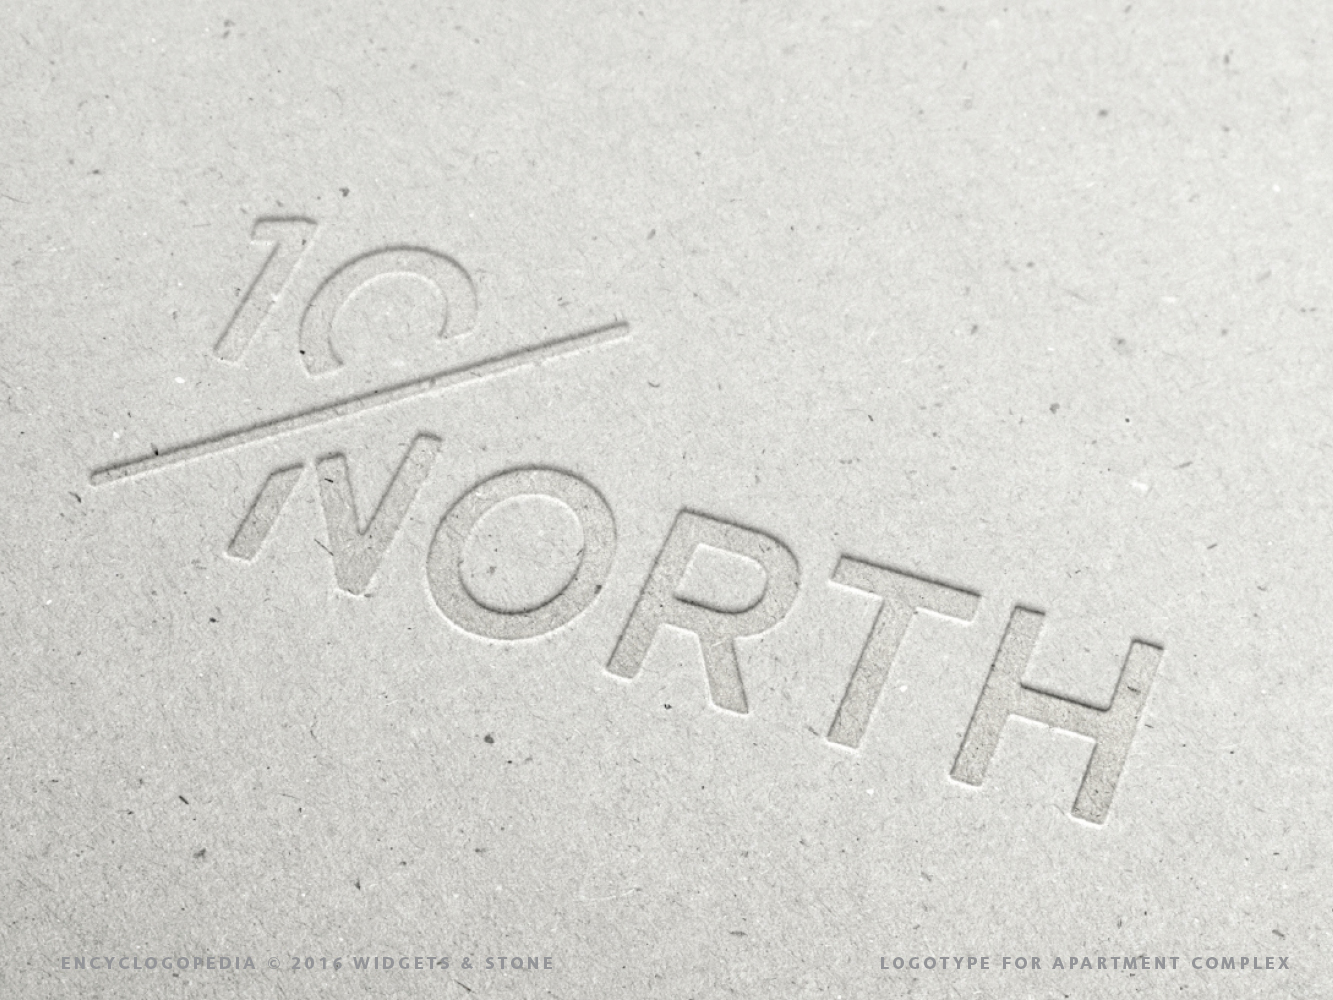 Copy of 10 North logo design